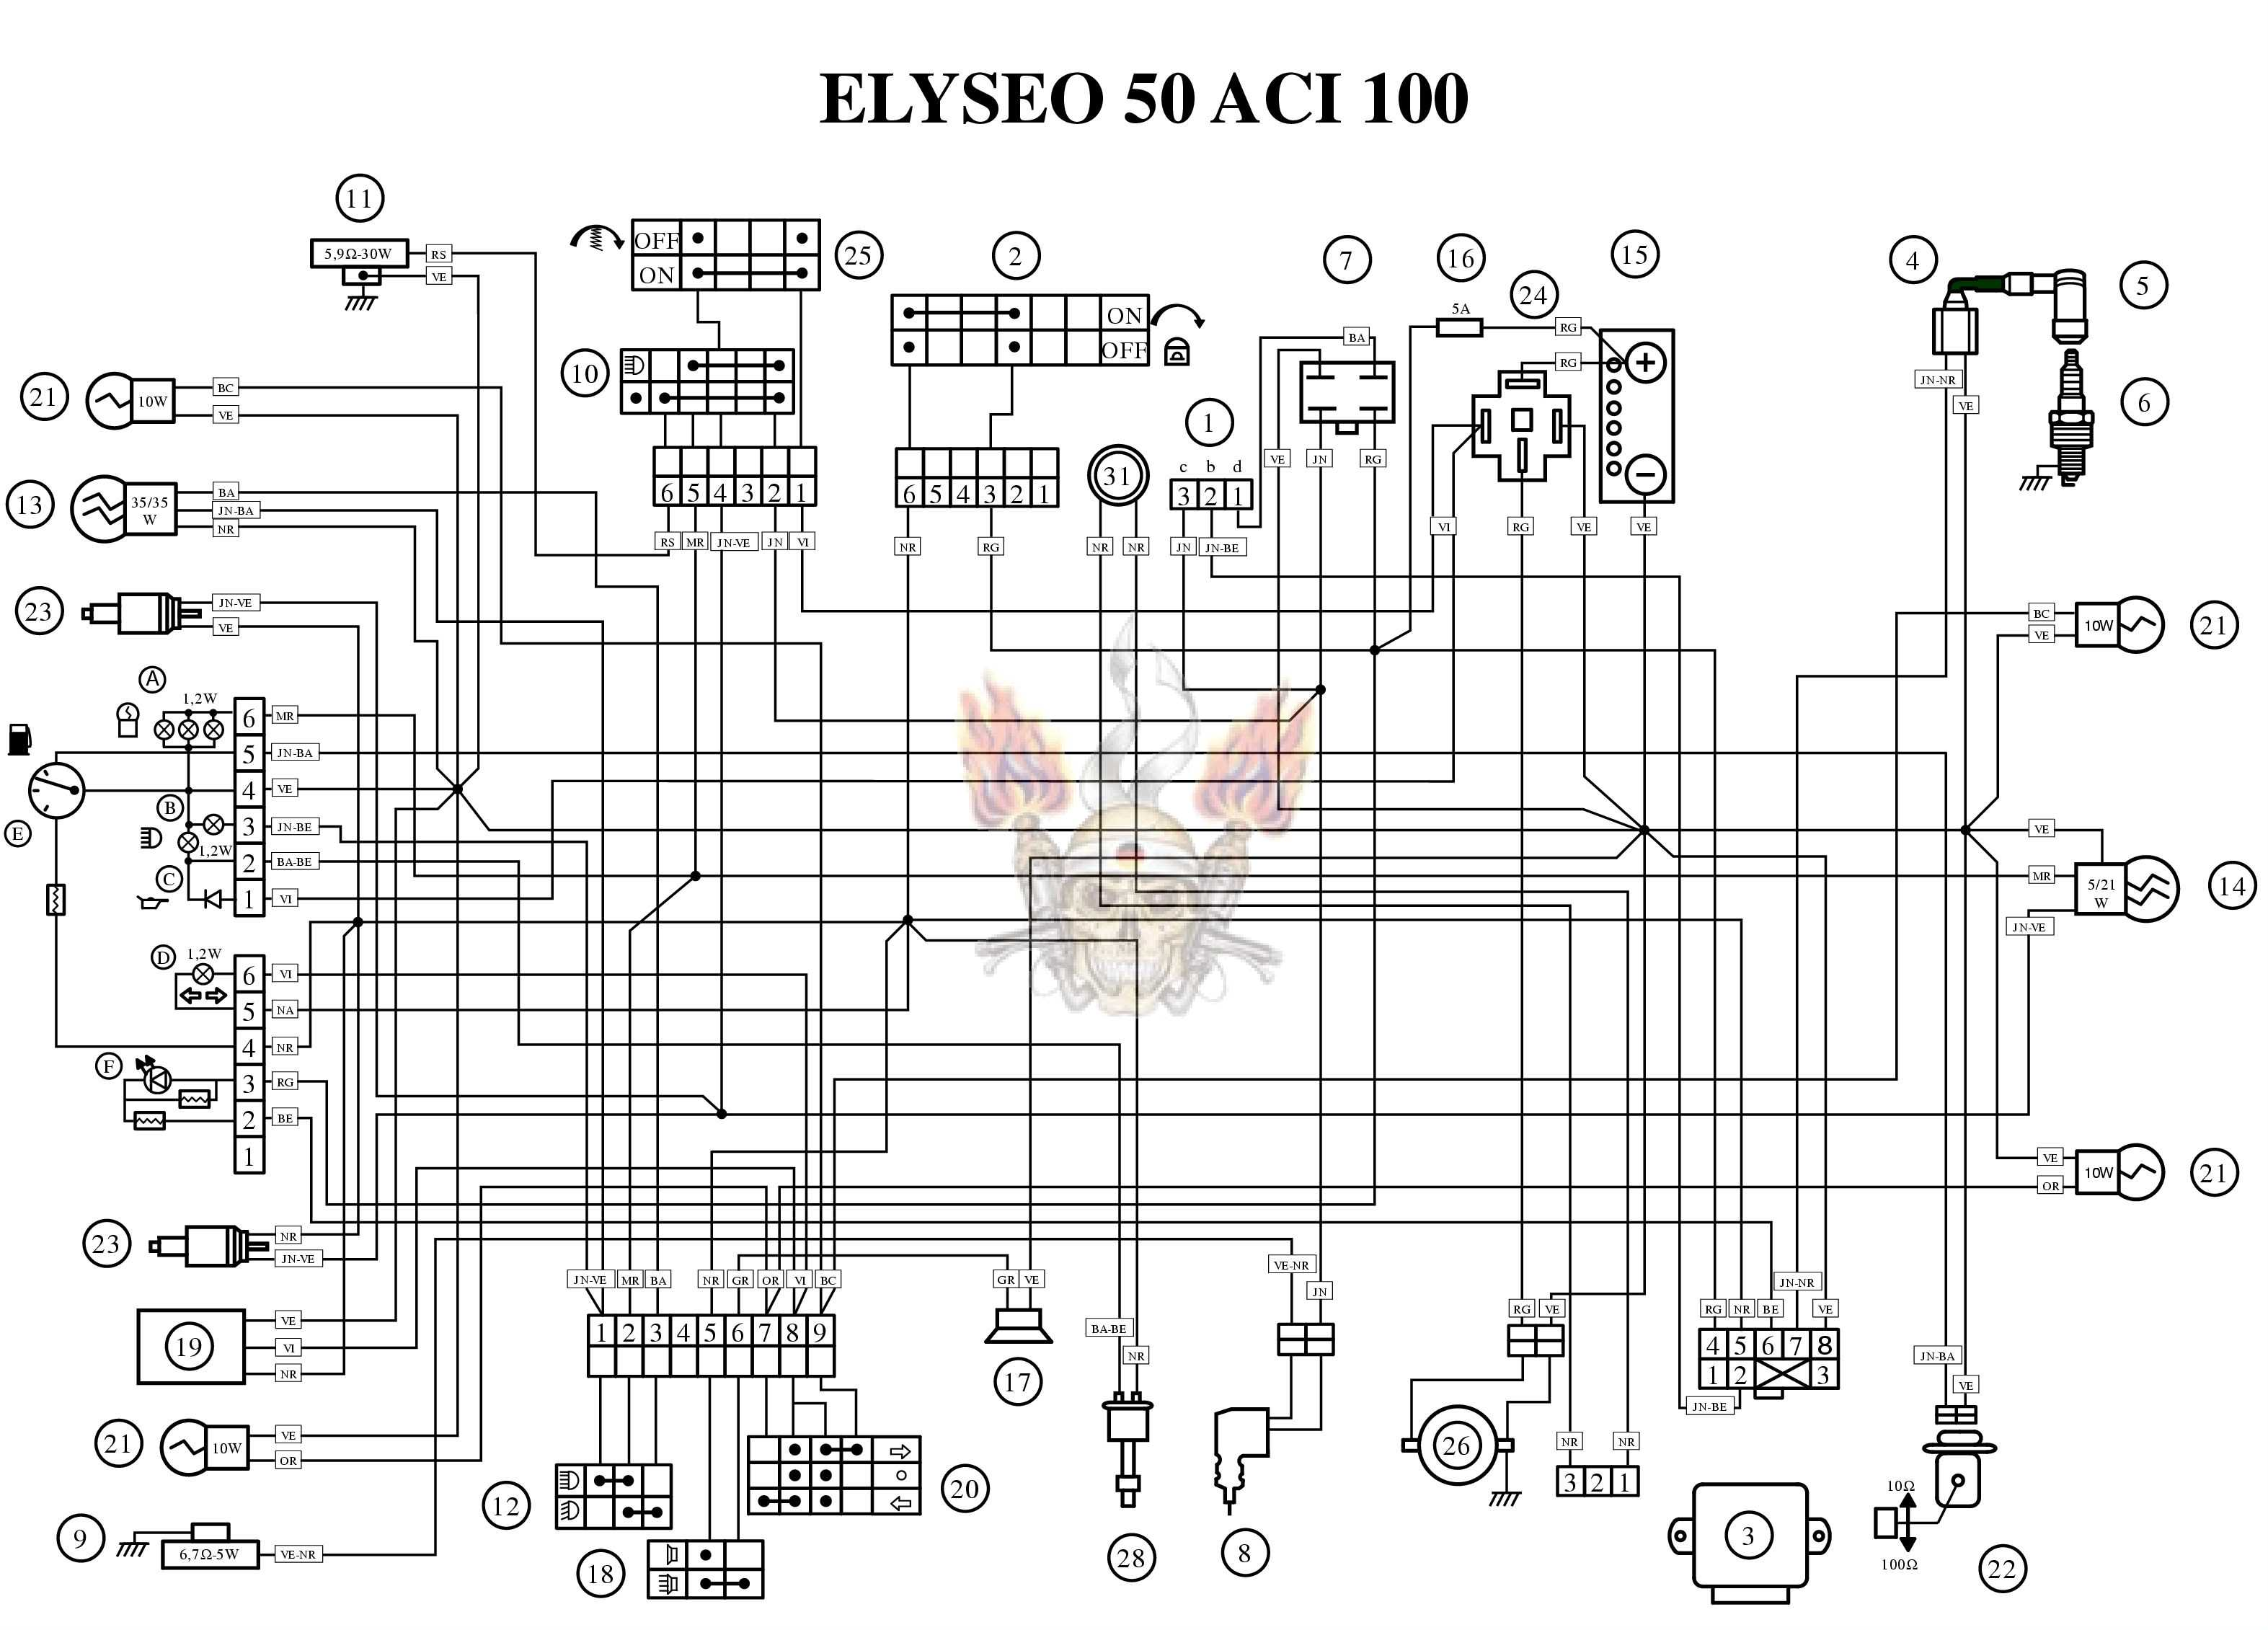 Peugeot 307 Wiring Diagram Download 35 Images Radio Efcaviation Com Elyseo 50 Aci 100